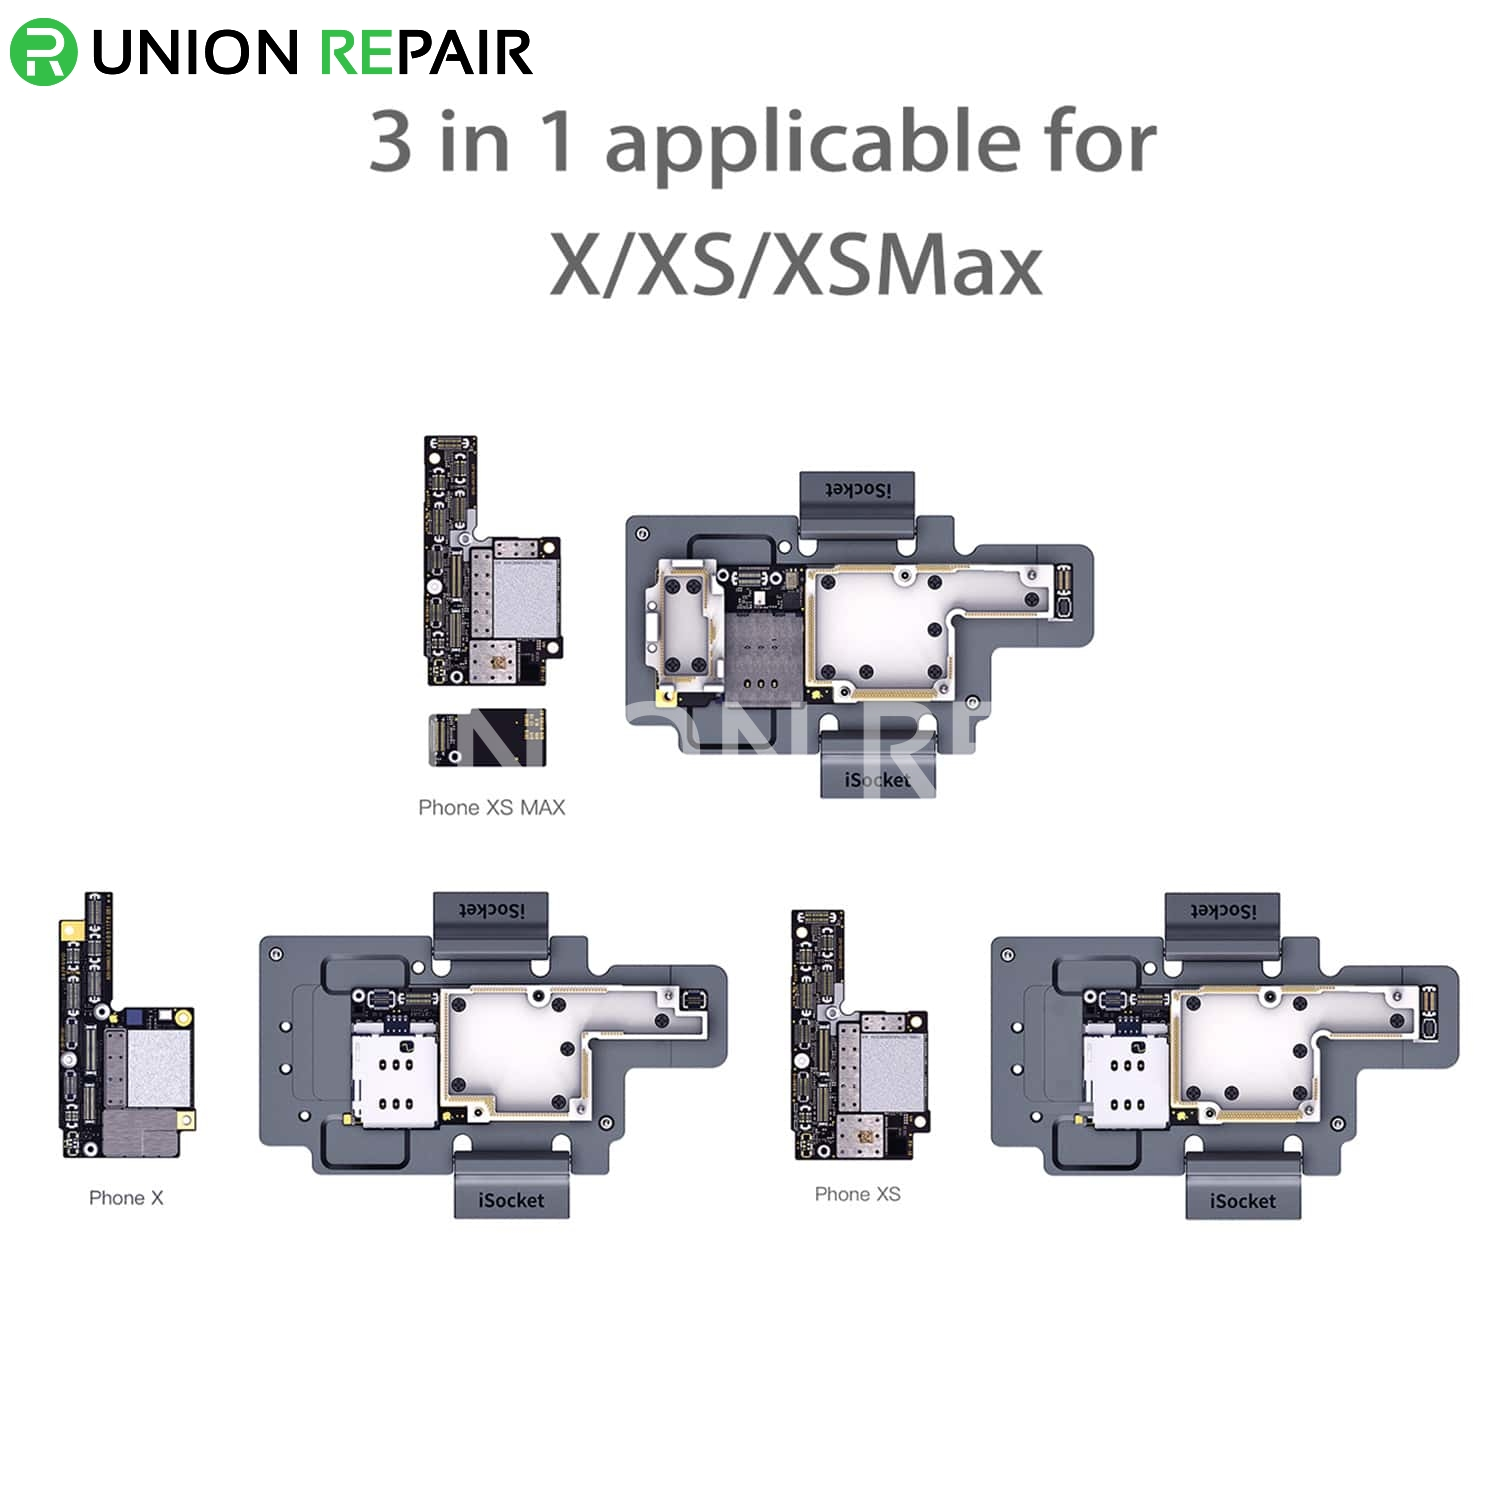 ToolPlus iSocket 3in1 iPhone X/Xs/XsMax Board Test Fixture